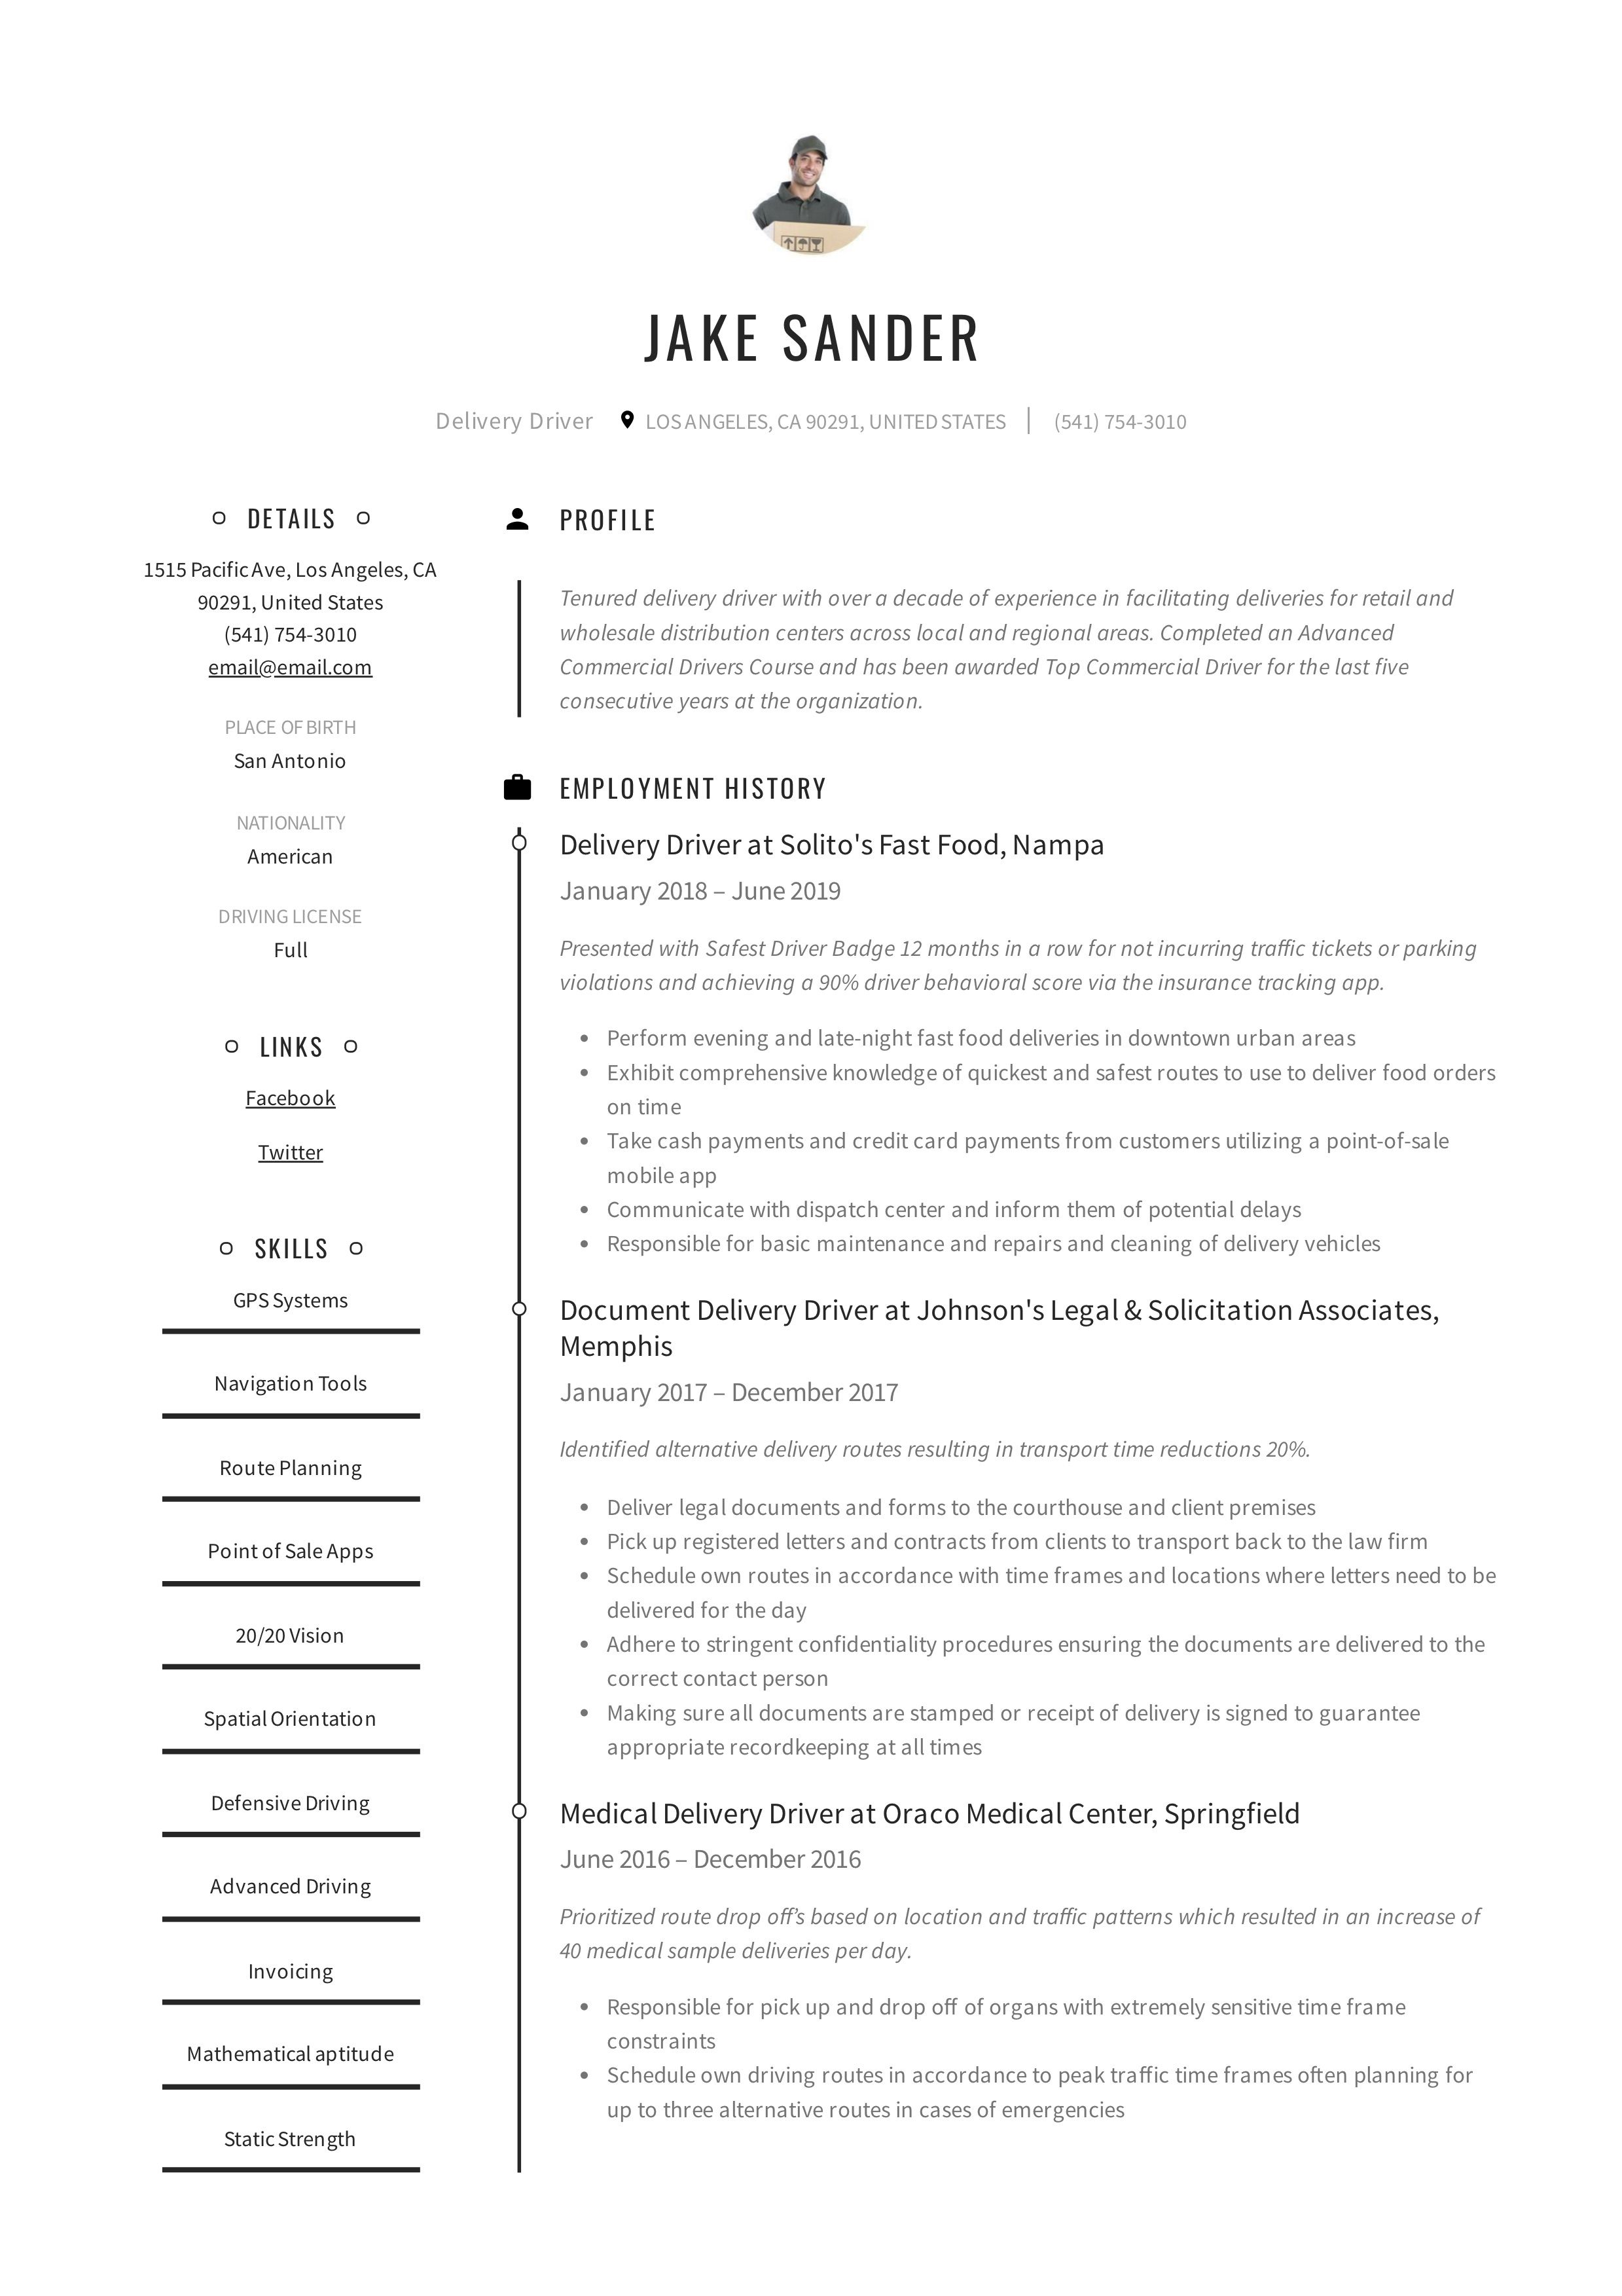 Delivery driver resume writing guide in 2020 guided